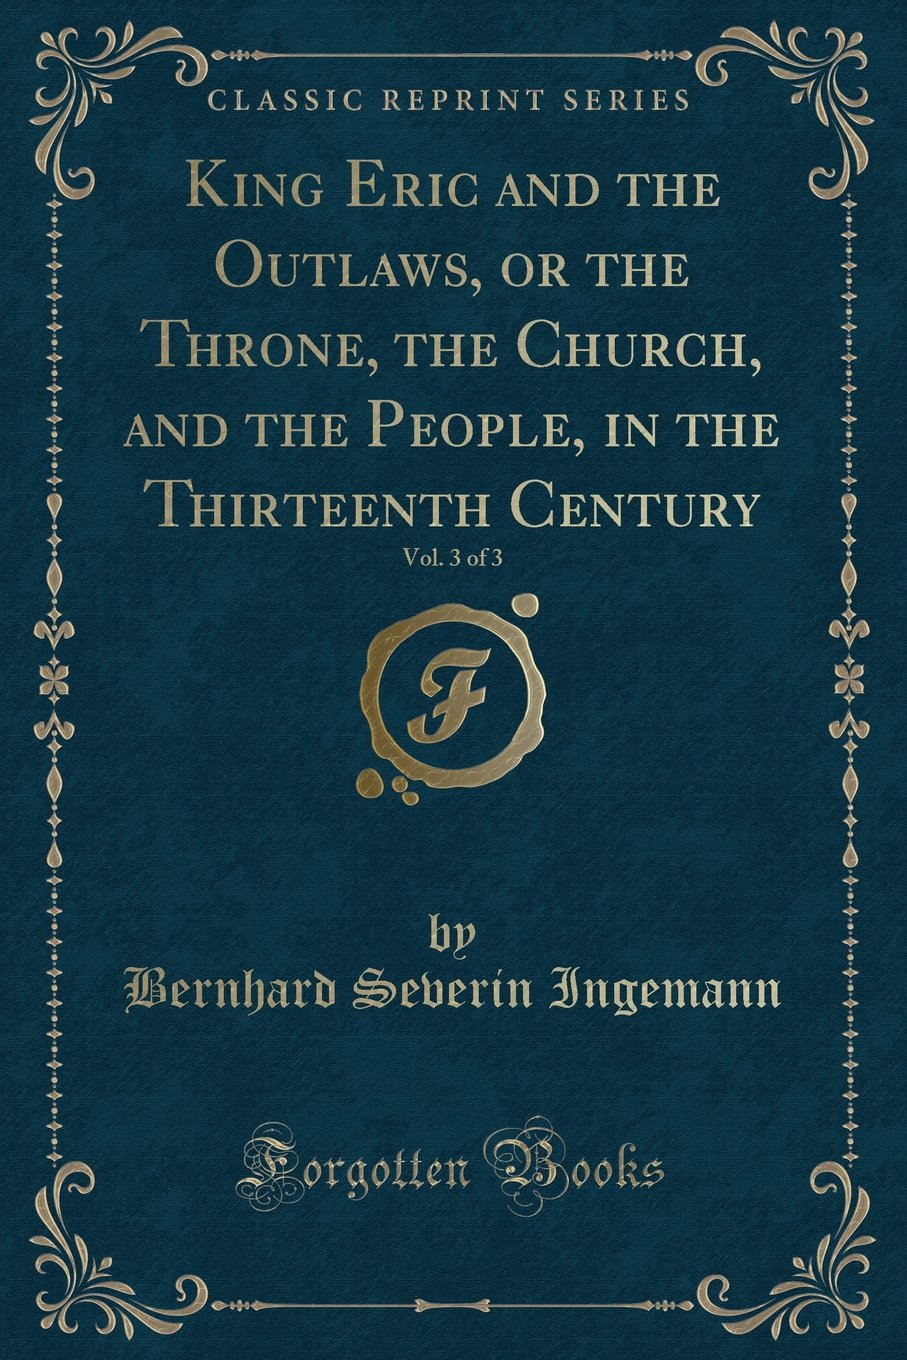 King Eric and the Outlaws, or the Throne, the Church, and the People, in the Thirteenth Century, Vol. 3 of 3 (Classic Reprint) ebook